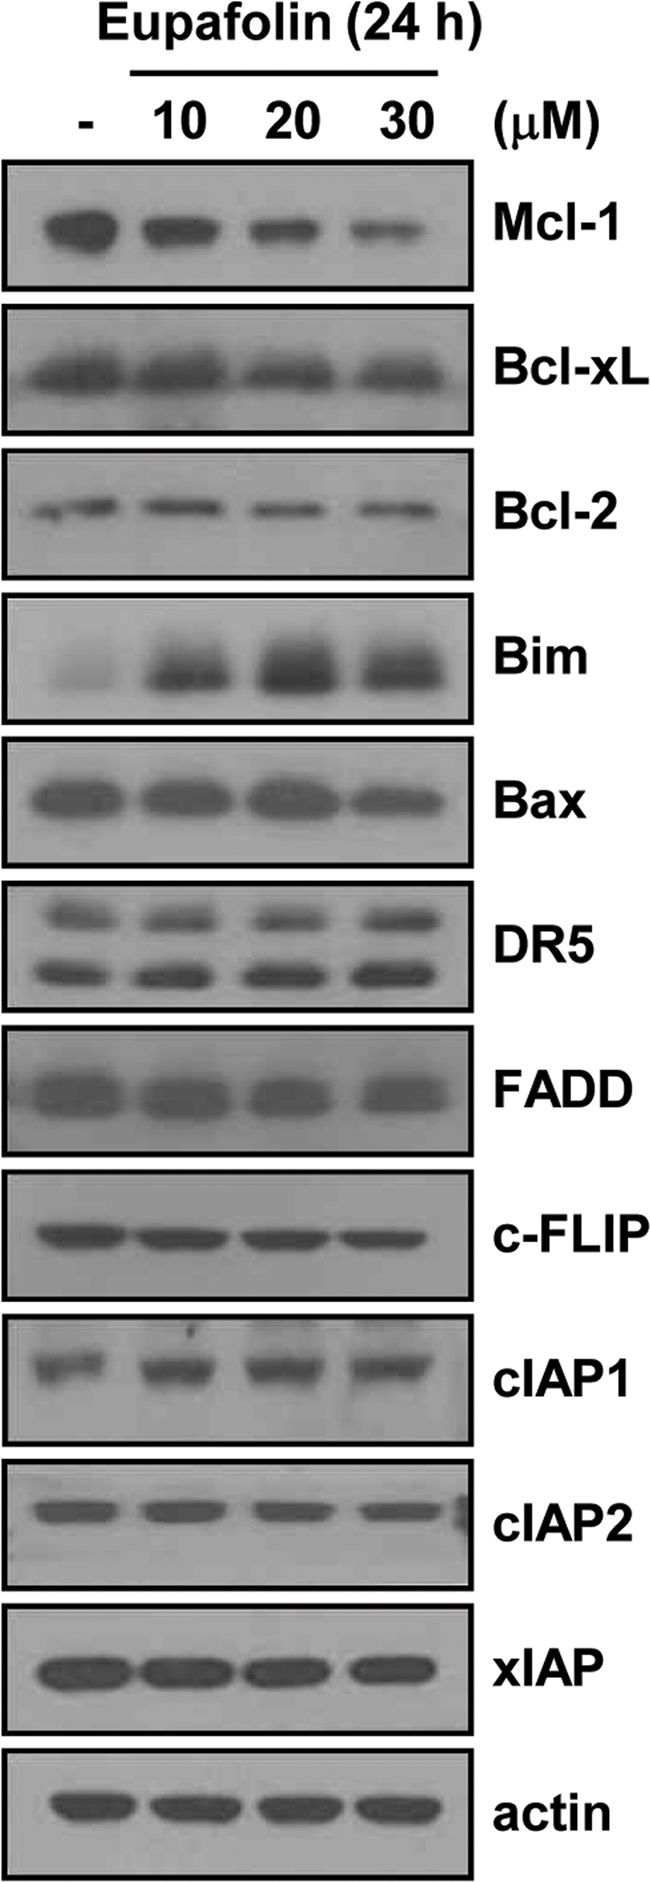 Effects of eupafolin on expression levels of apoptosis-related proteins.